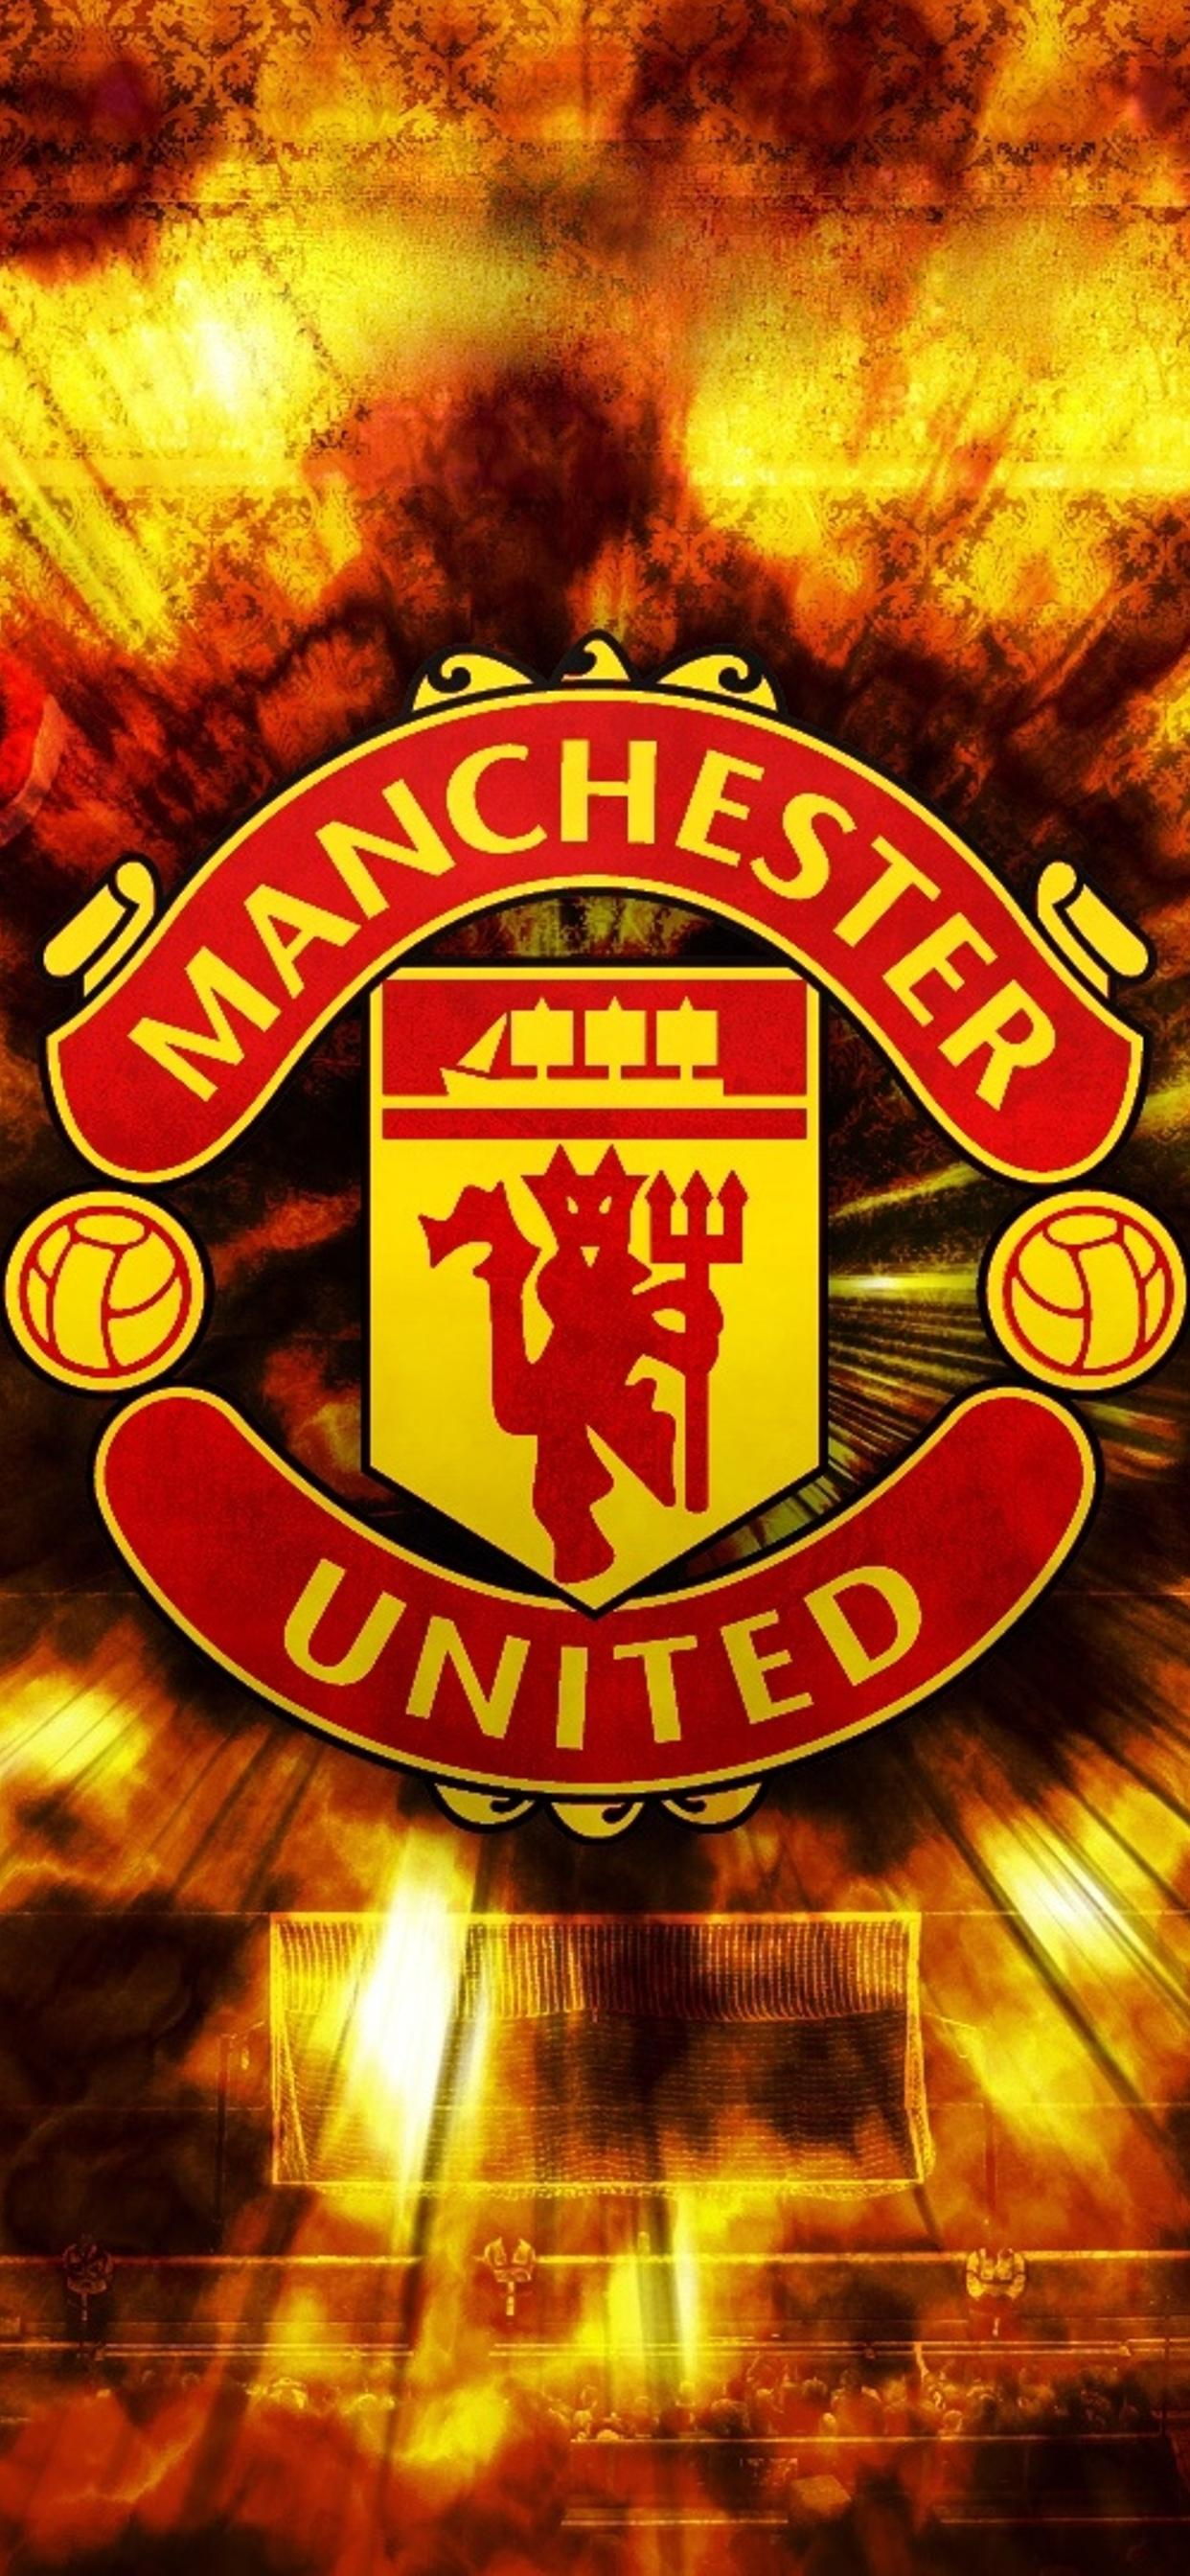 Manchester United Inscription And Football Background